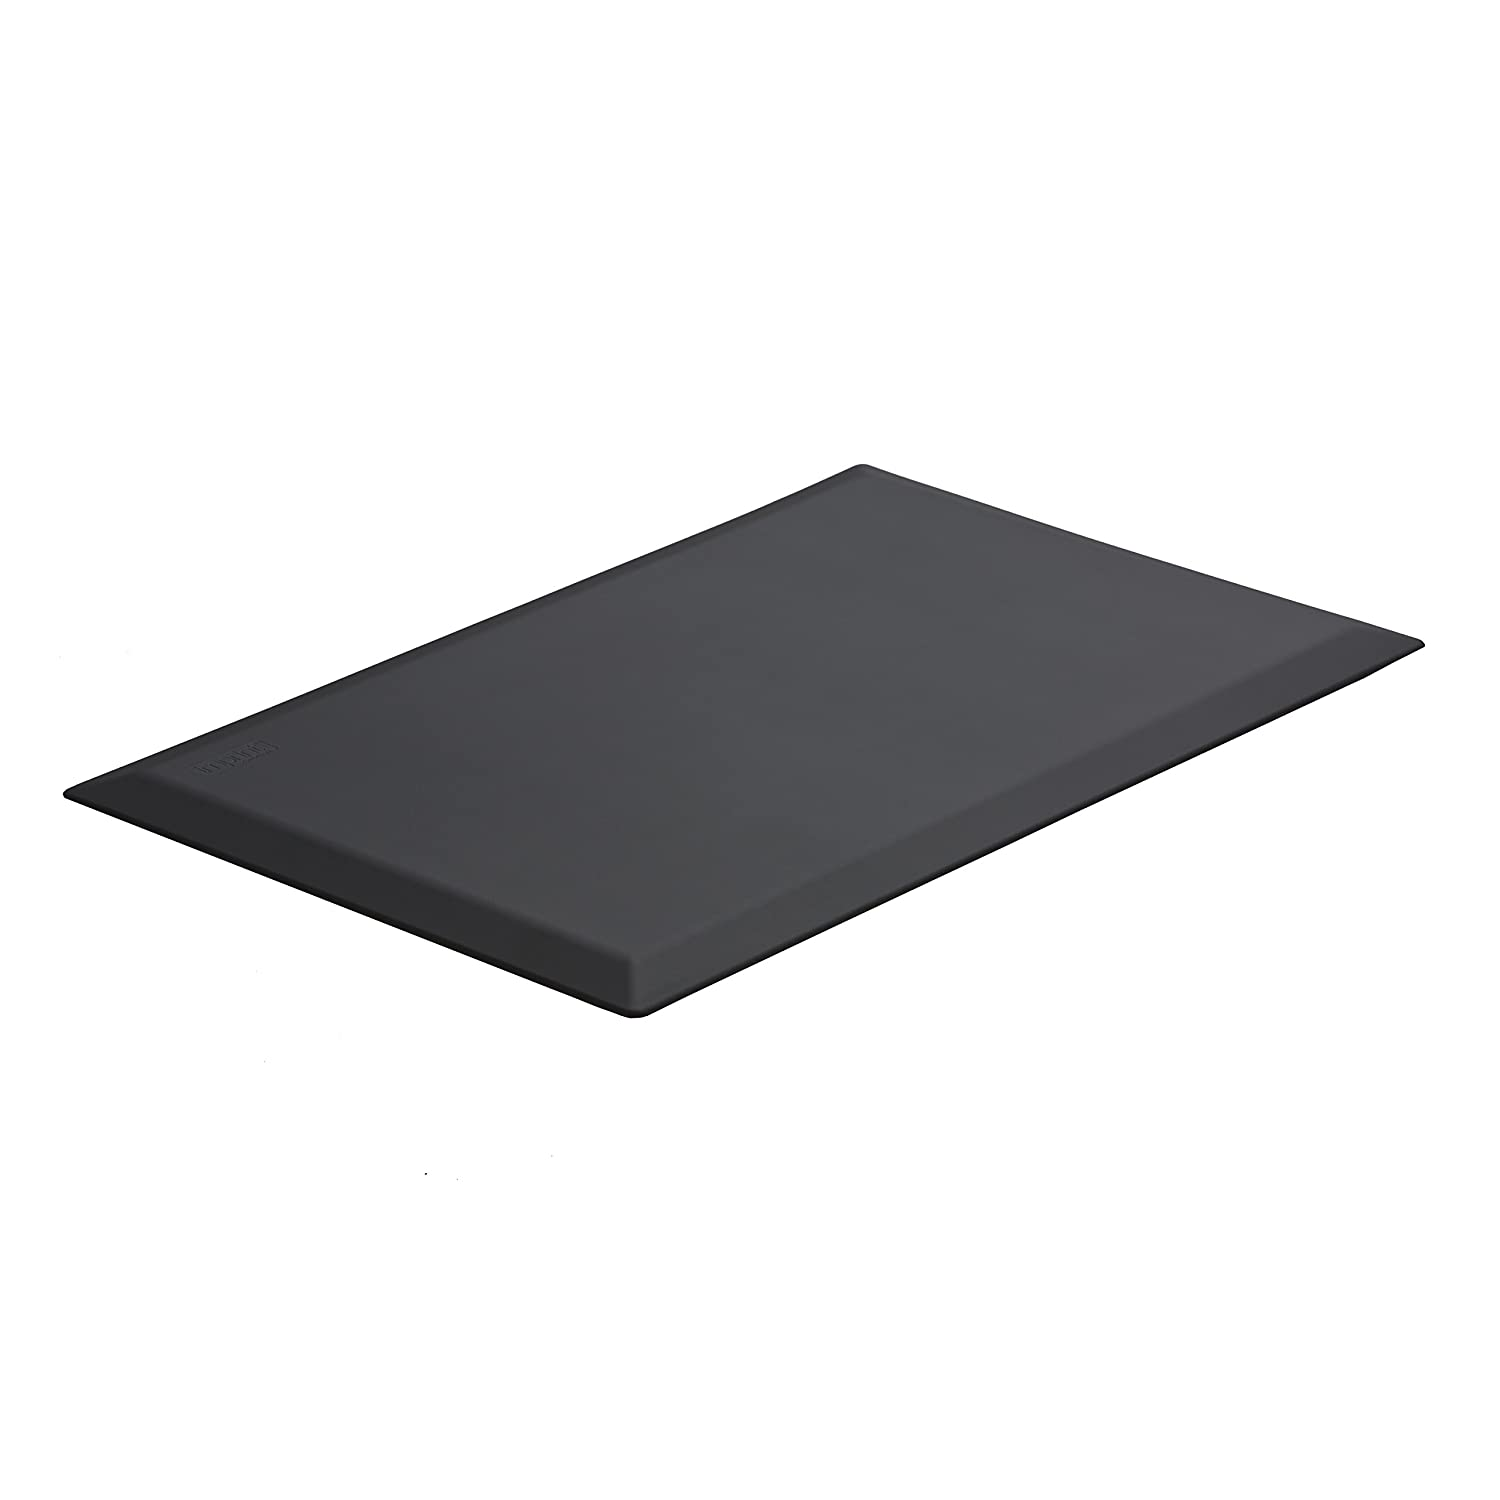 perfect ergonomic office best ergonomics office equipment furniture healthy workspace jarvis topo handshake mouse keyboard imprint mat cumulus pro